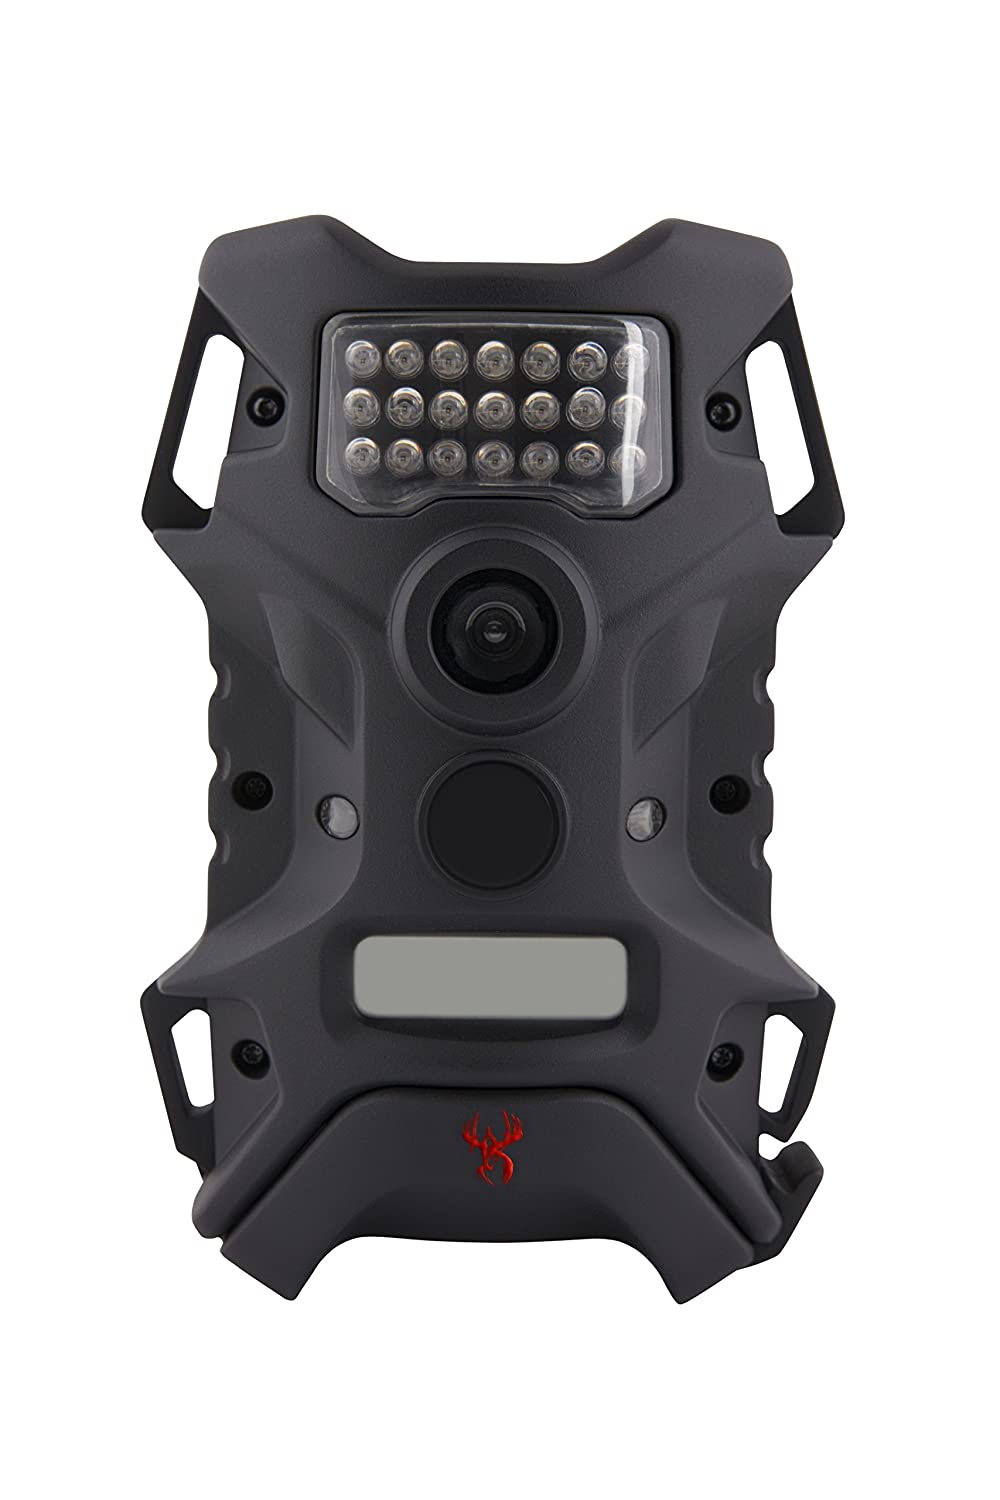 Wildgame Innovations TX10i1 8 Terra Extreme Camera 10 MP Black